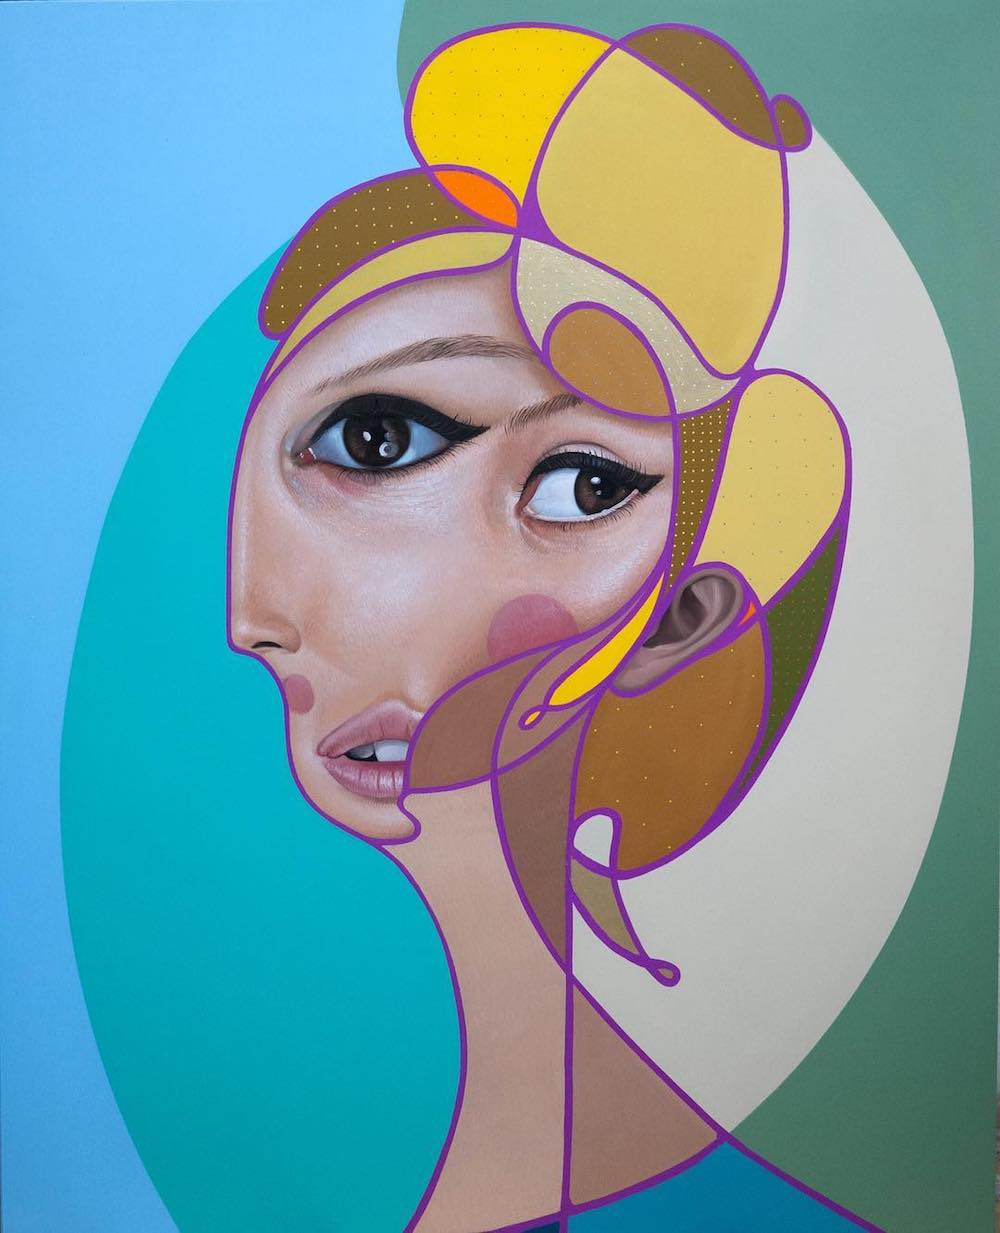 New Paintings Which Combine Cubist and Realist Elements by 'Belin'